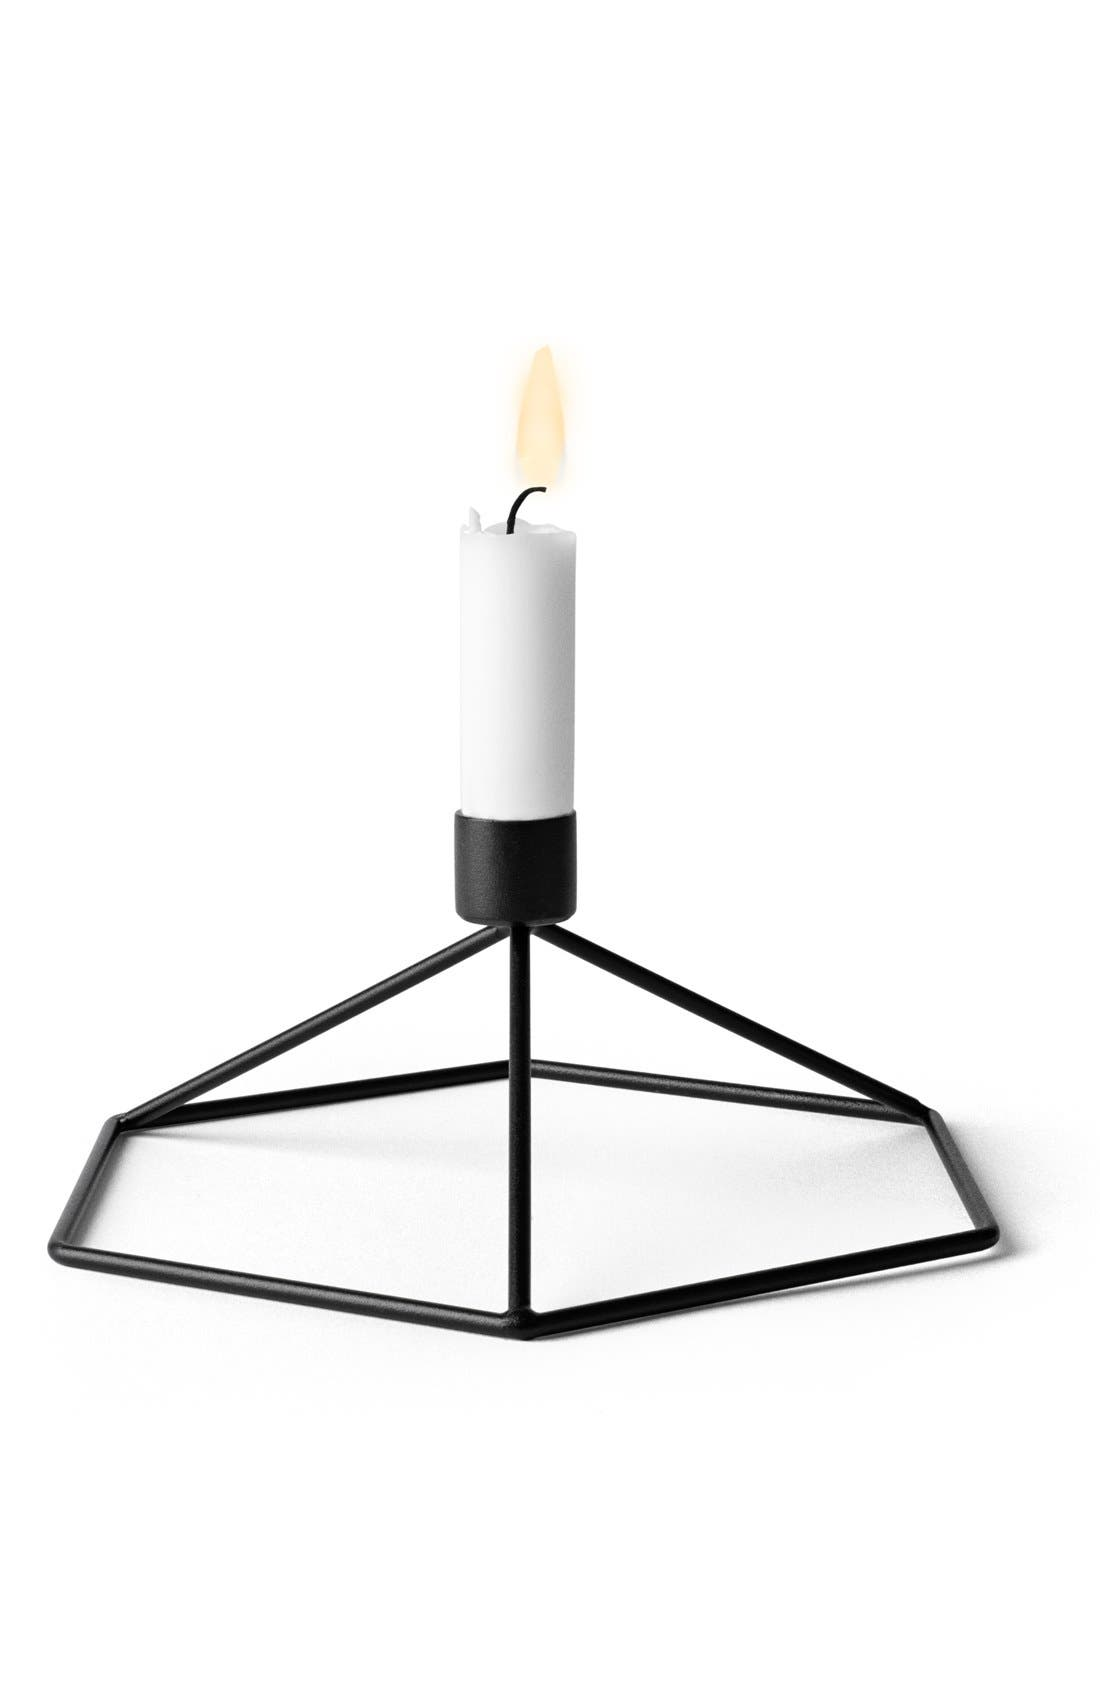 Alternate Image 1 Selected - Menu 'POV' Table Candle Holder